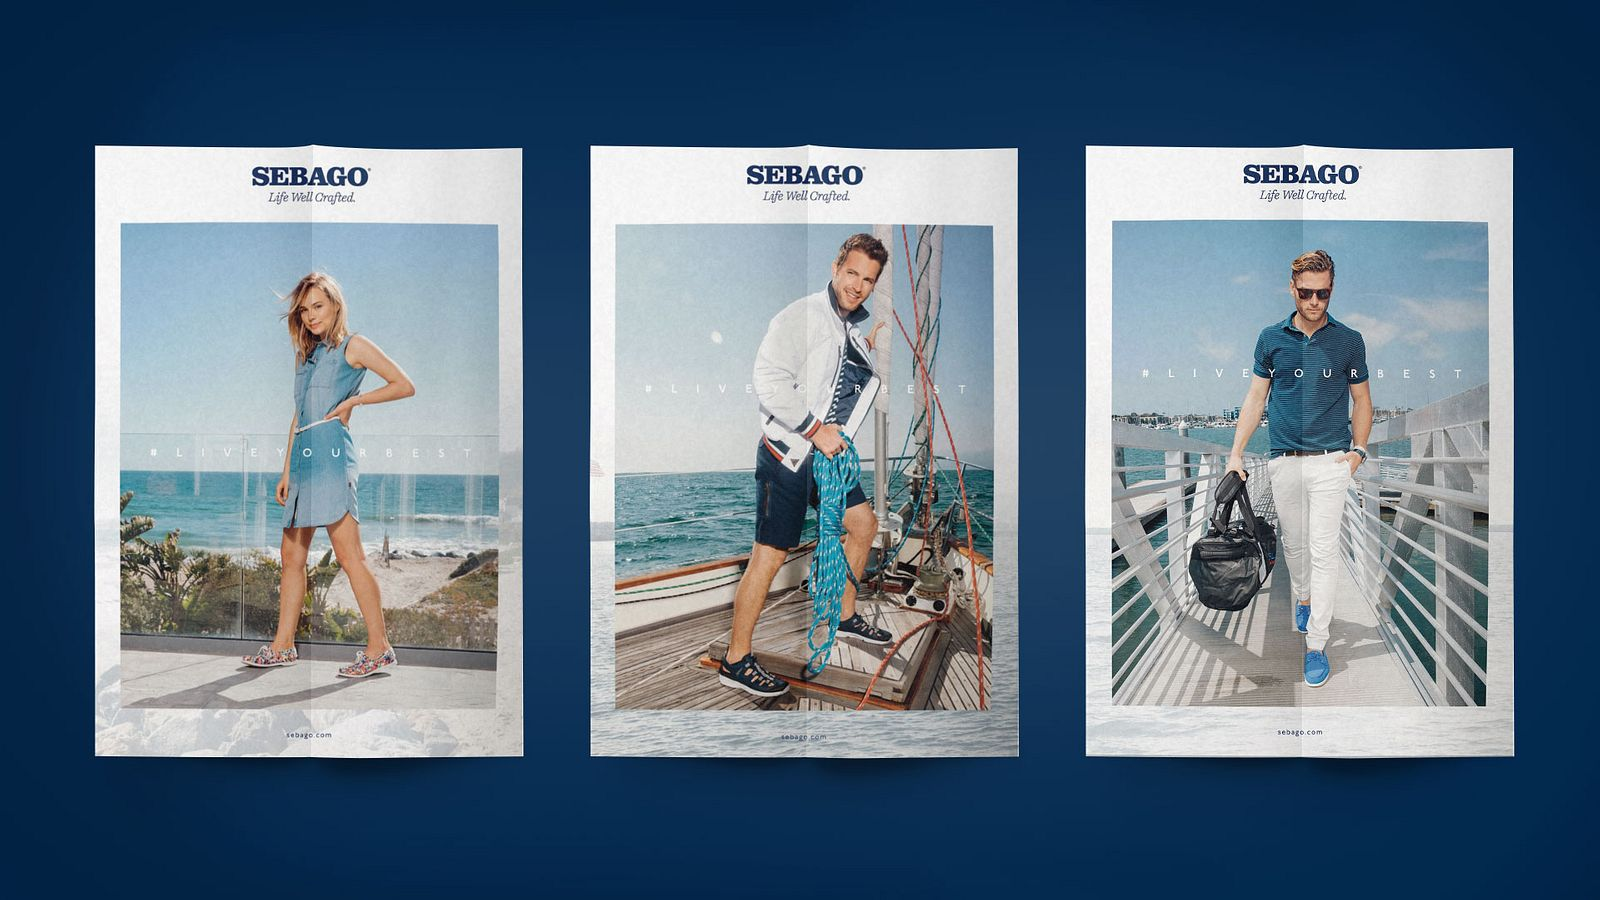 Sebago print ads, designed by Someoddpilot